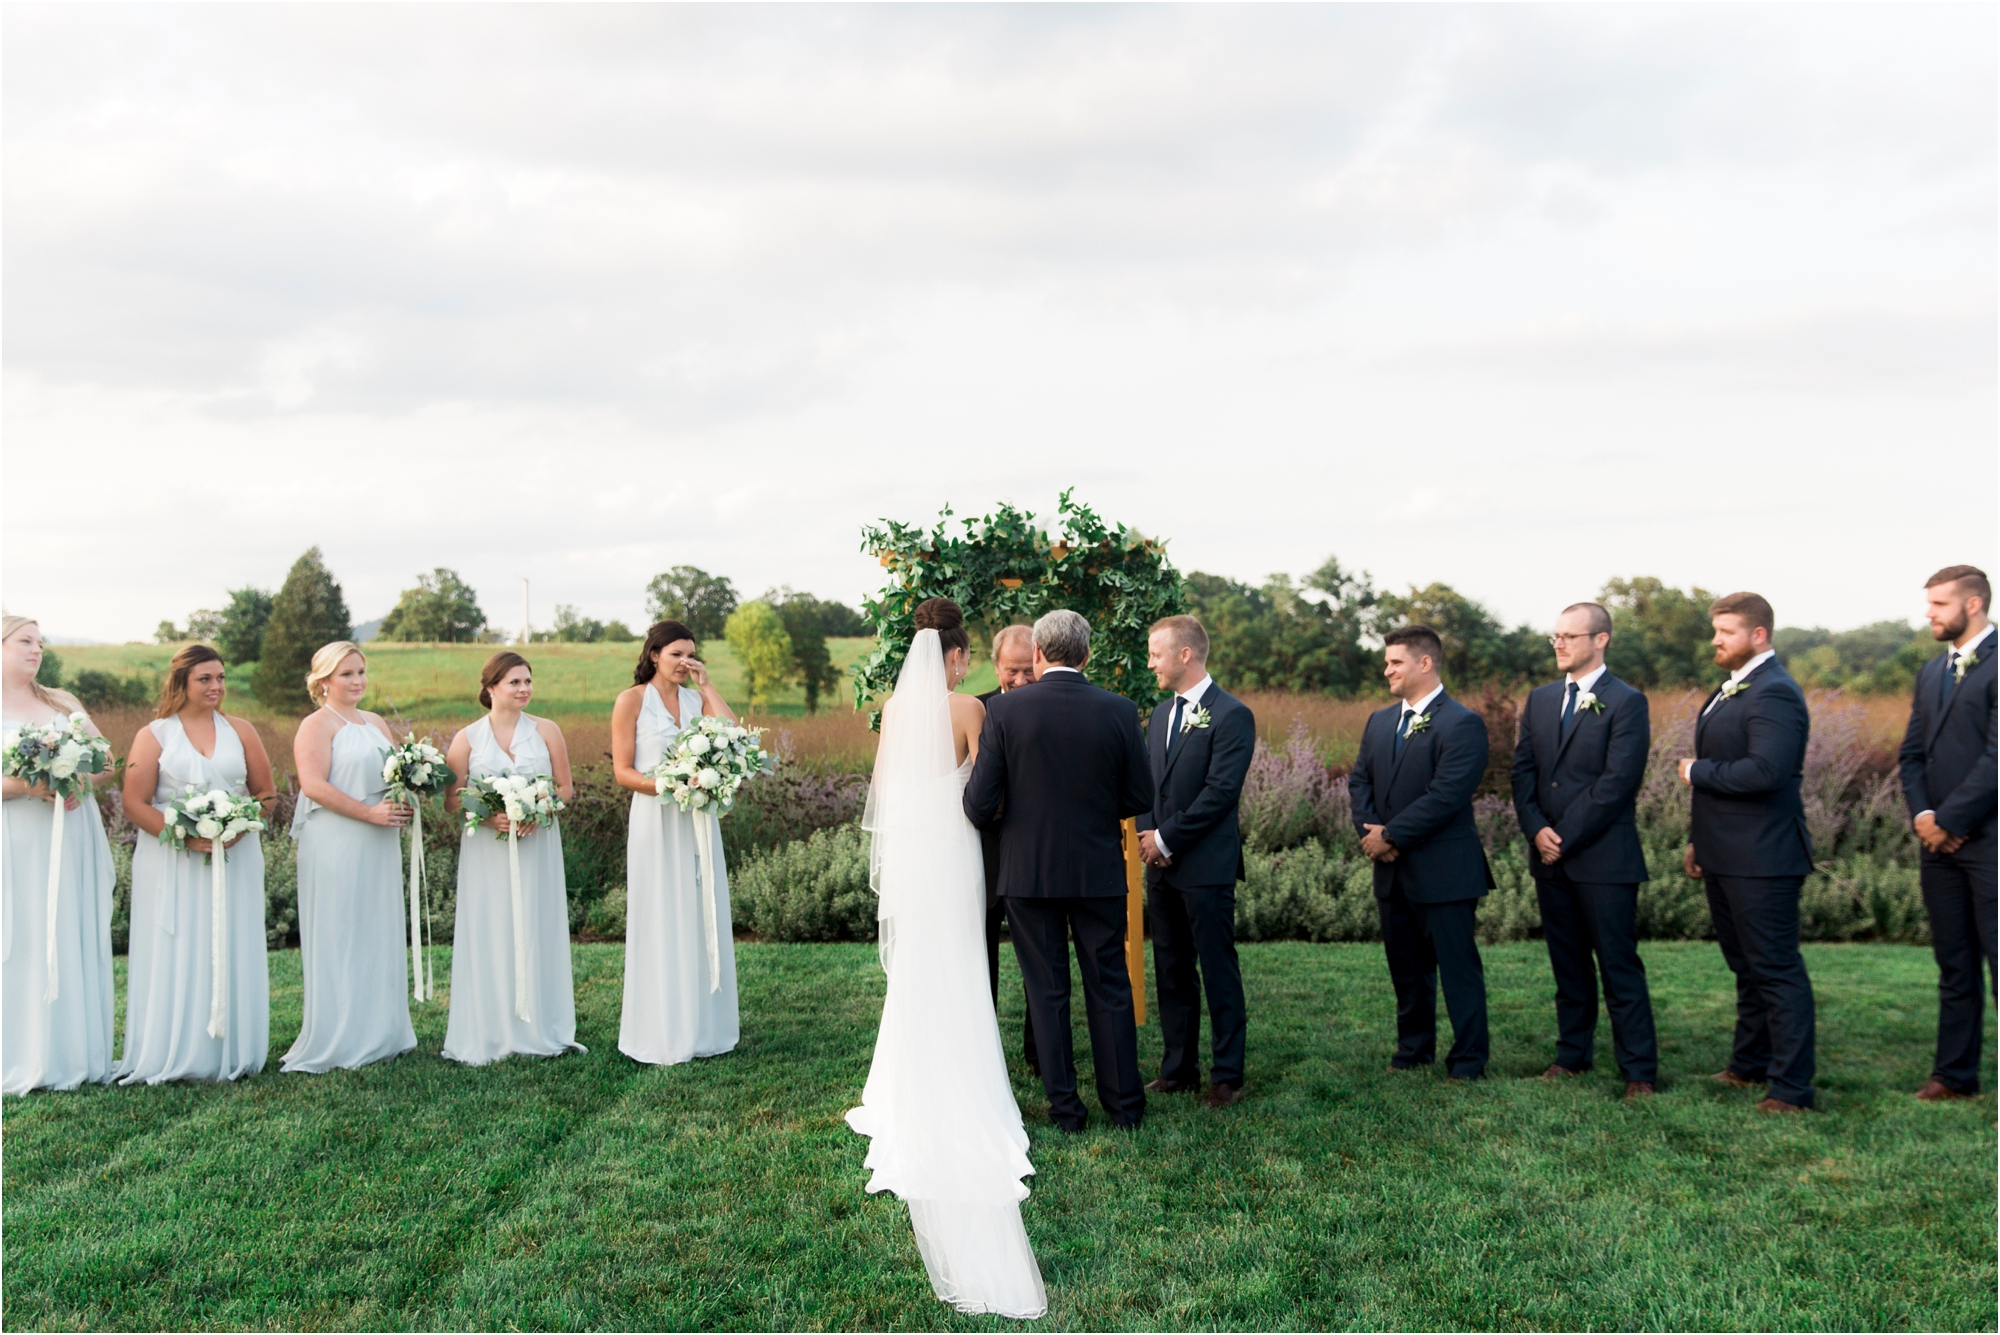 michelle-george-early-mountain-vineyard-charlottesville-virginia-wedding-photos_0023.jpg